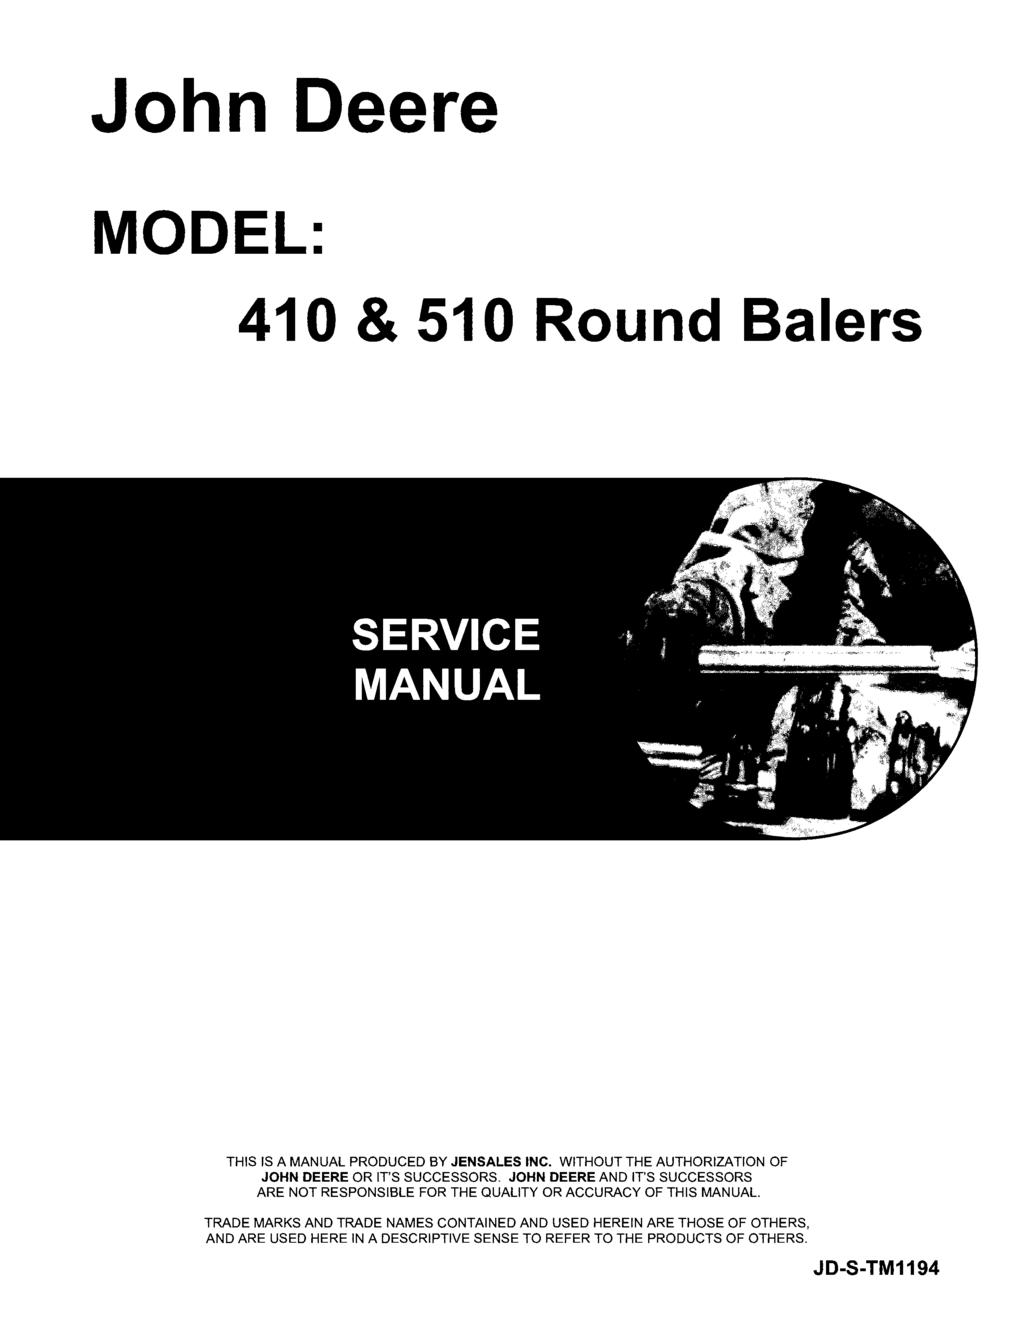 John Deere MODEL: 410 & 510 Round Balers THIS IS A MANUAL PRODUCED BY JENSALES INC. WITHOUT THE AUTHORIZATION OF JOHN DEERE OR IT'S SUCCESSORS.